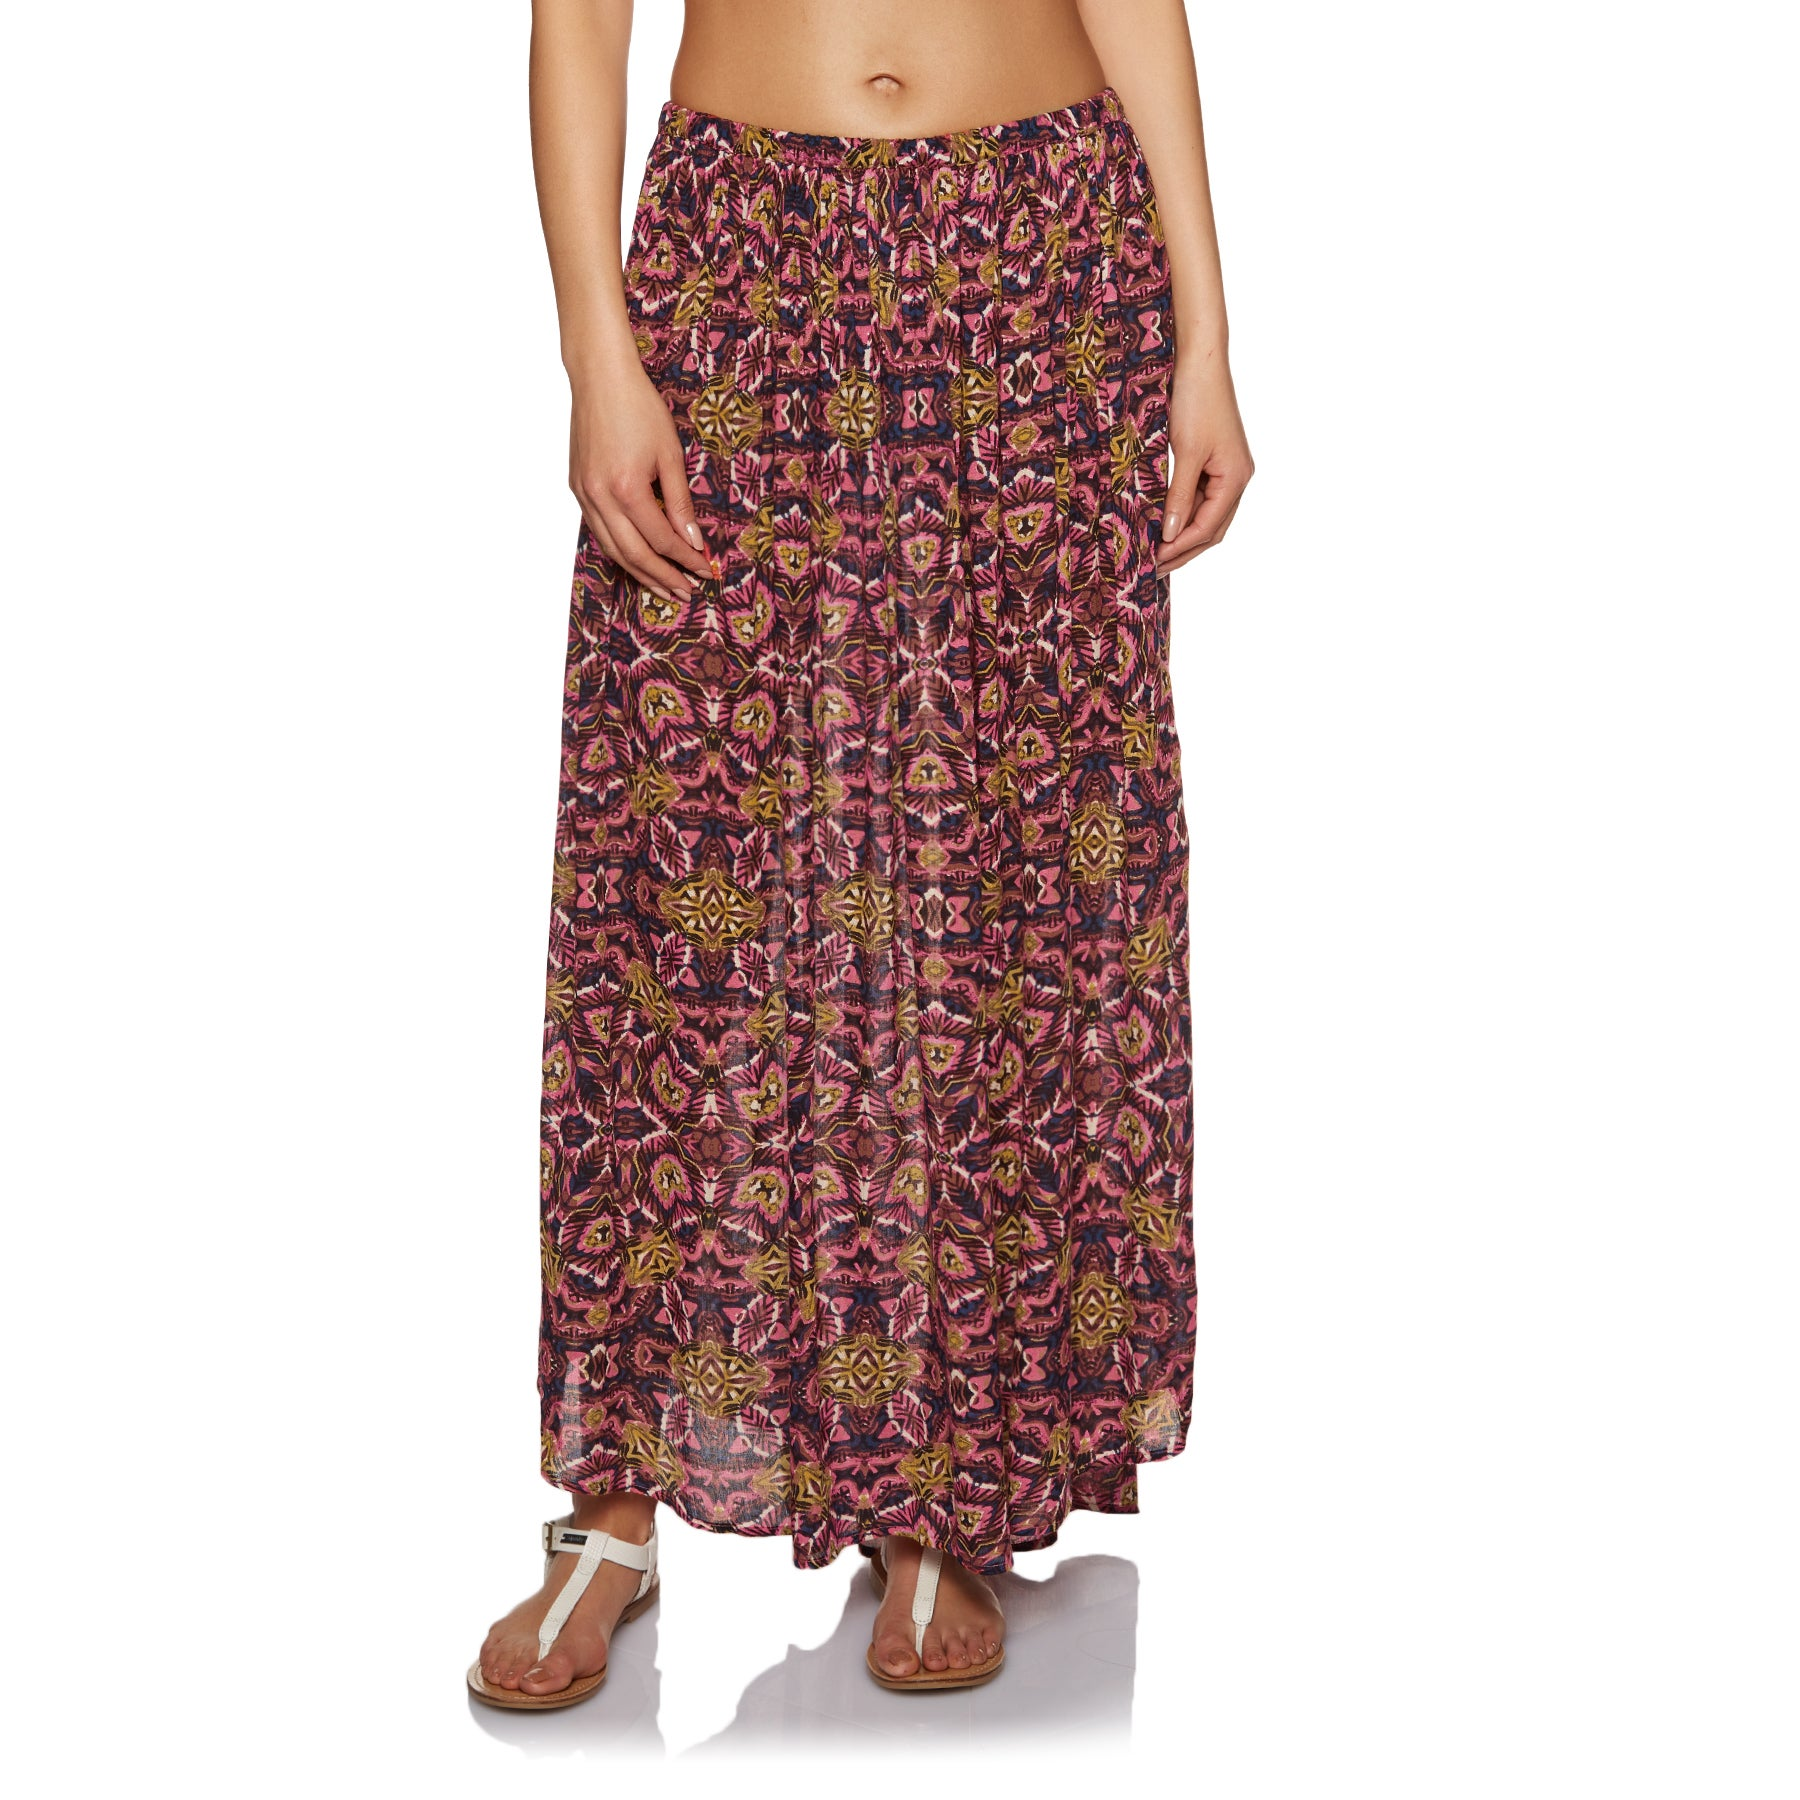 1299dc86cbfb Billabong Sun Safari Womens Skirt available from Surfdome